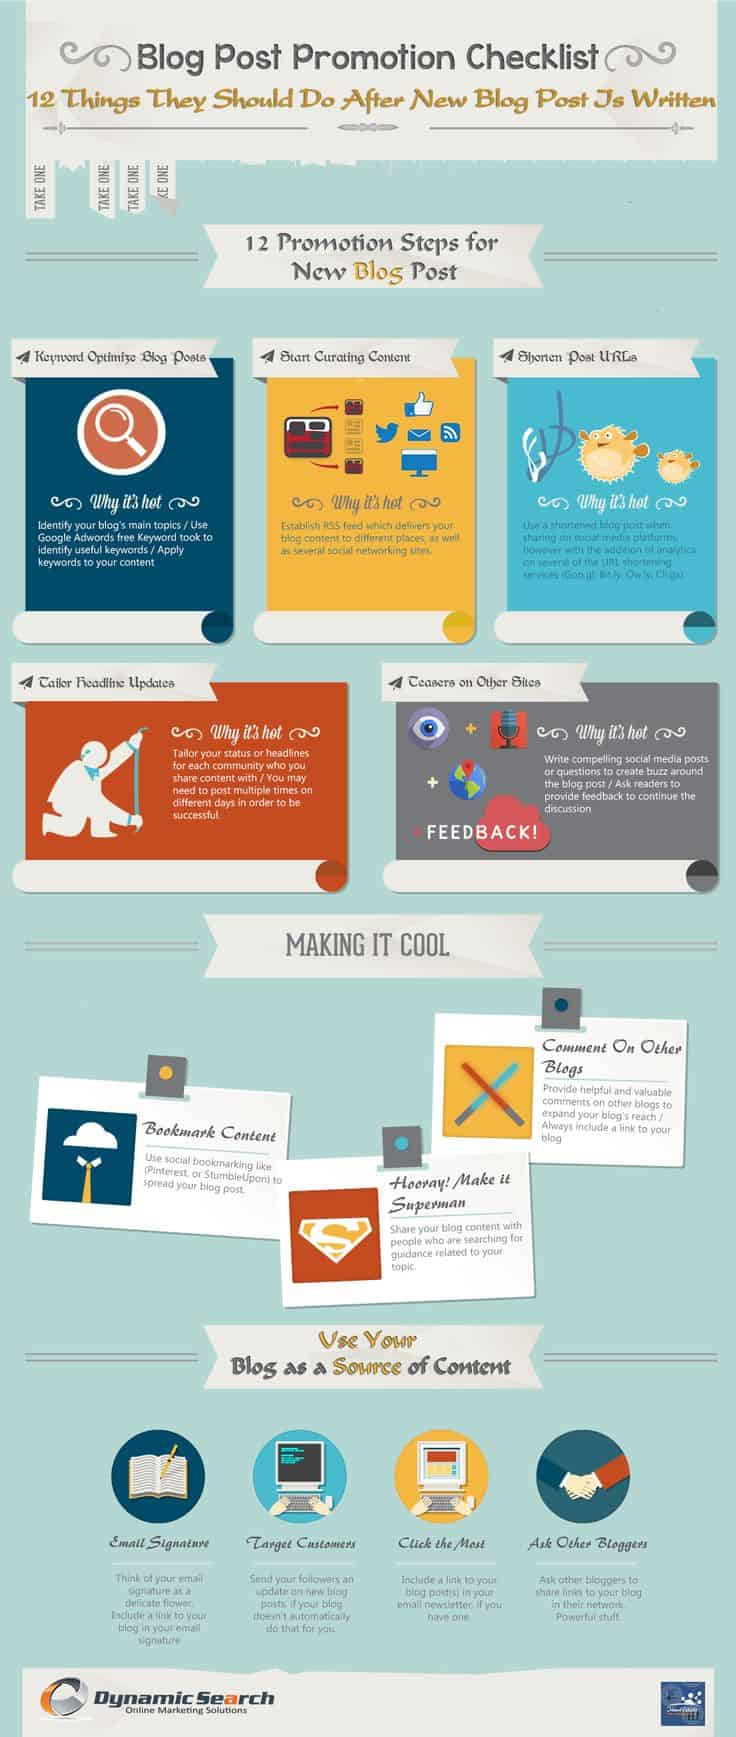 For 12 more great ideas on how to promote your blog, check out this great infographic!